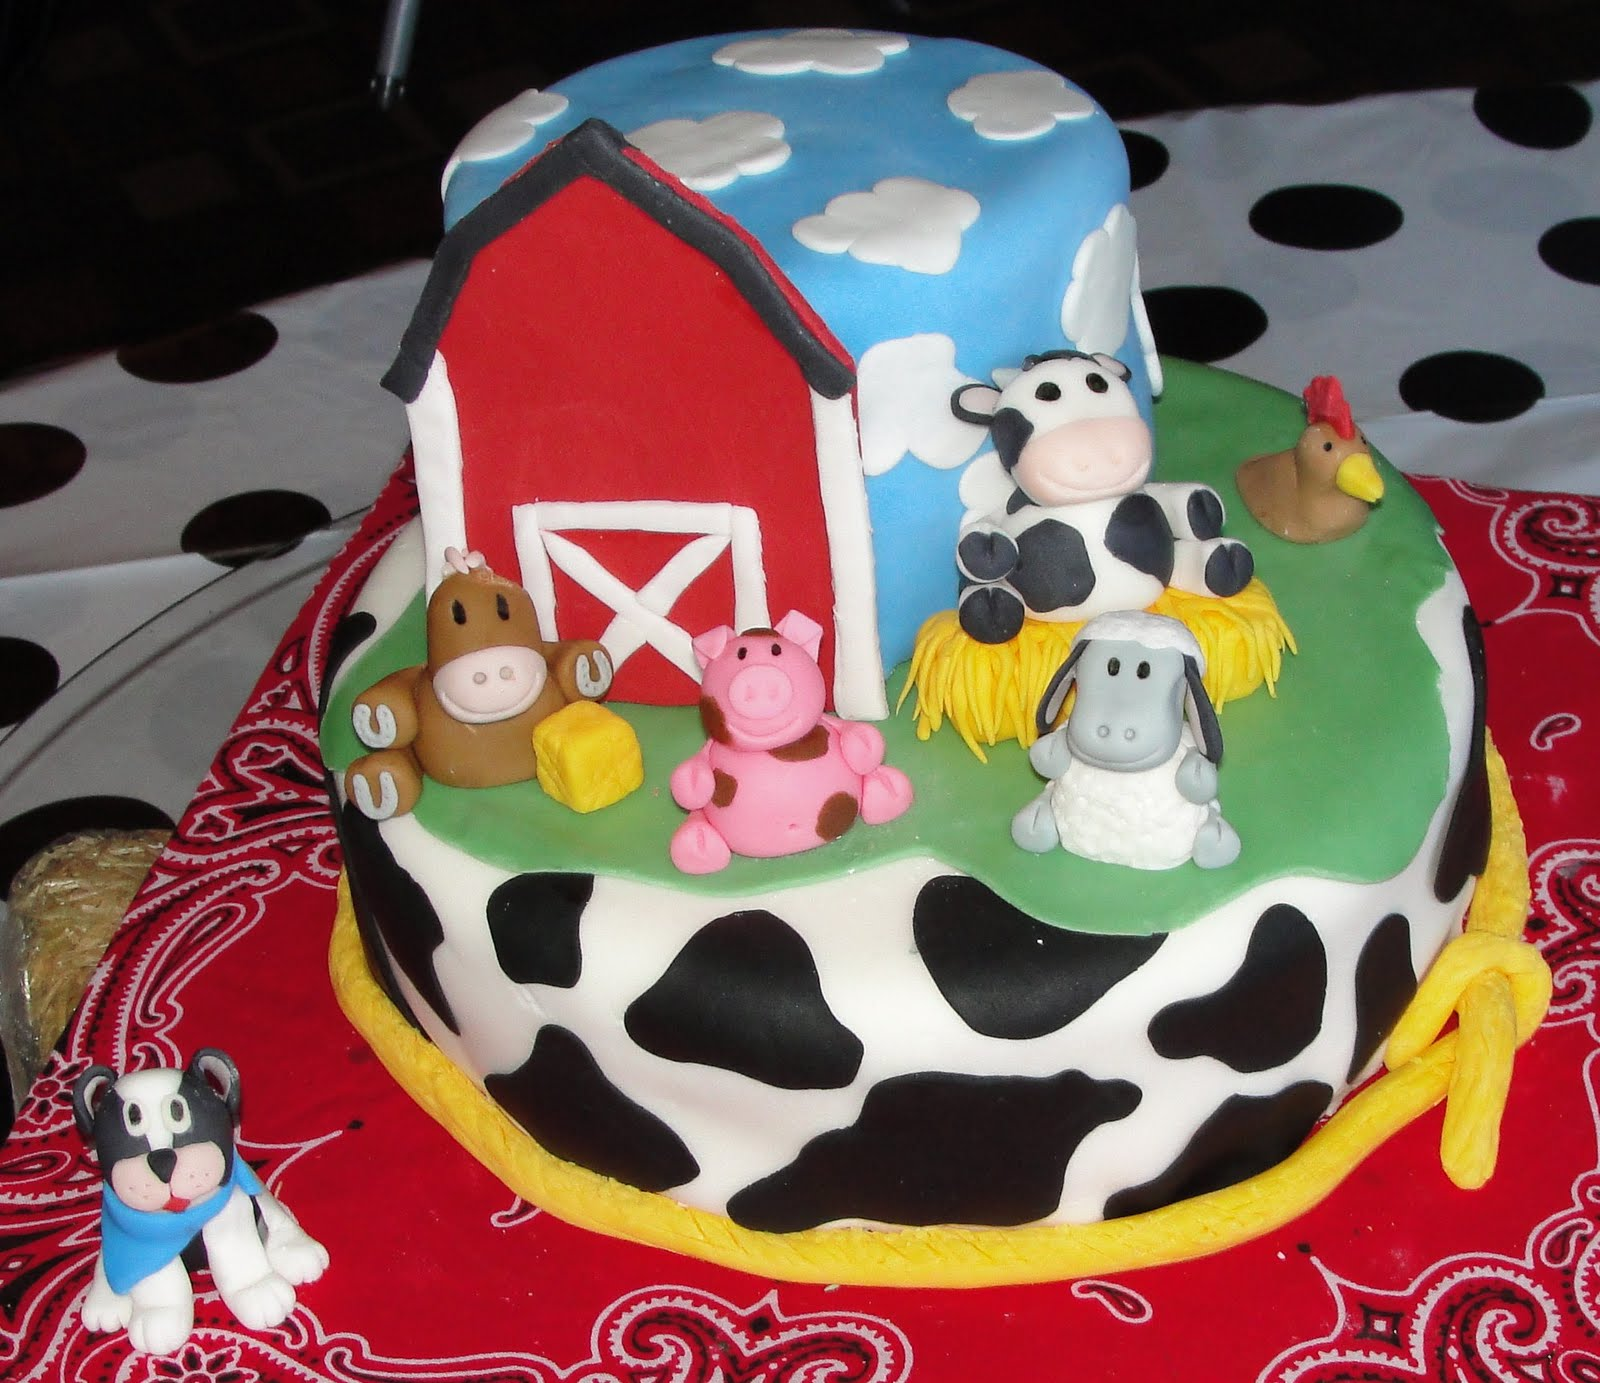 In January, My Neighbor Asked Me To Do Her Daughteru0027s Baby Shower Cake. It  Was Going To Be Farm Animal Theme, So She Knew She Wanted Me To Do It. So I  Did.